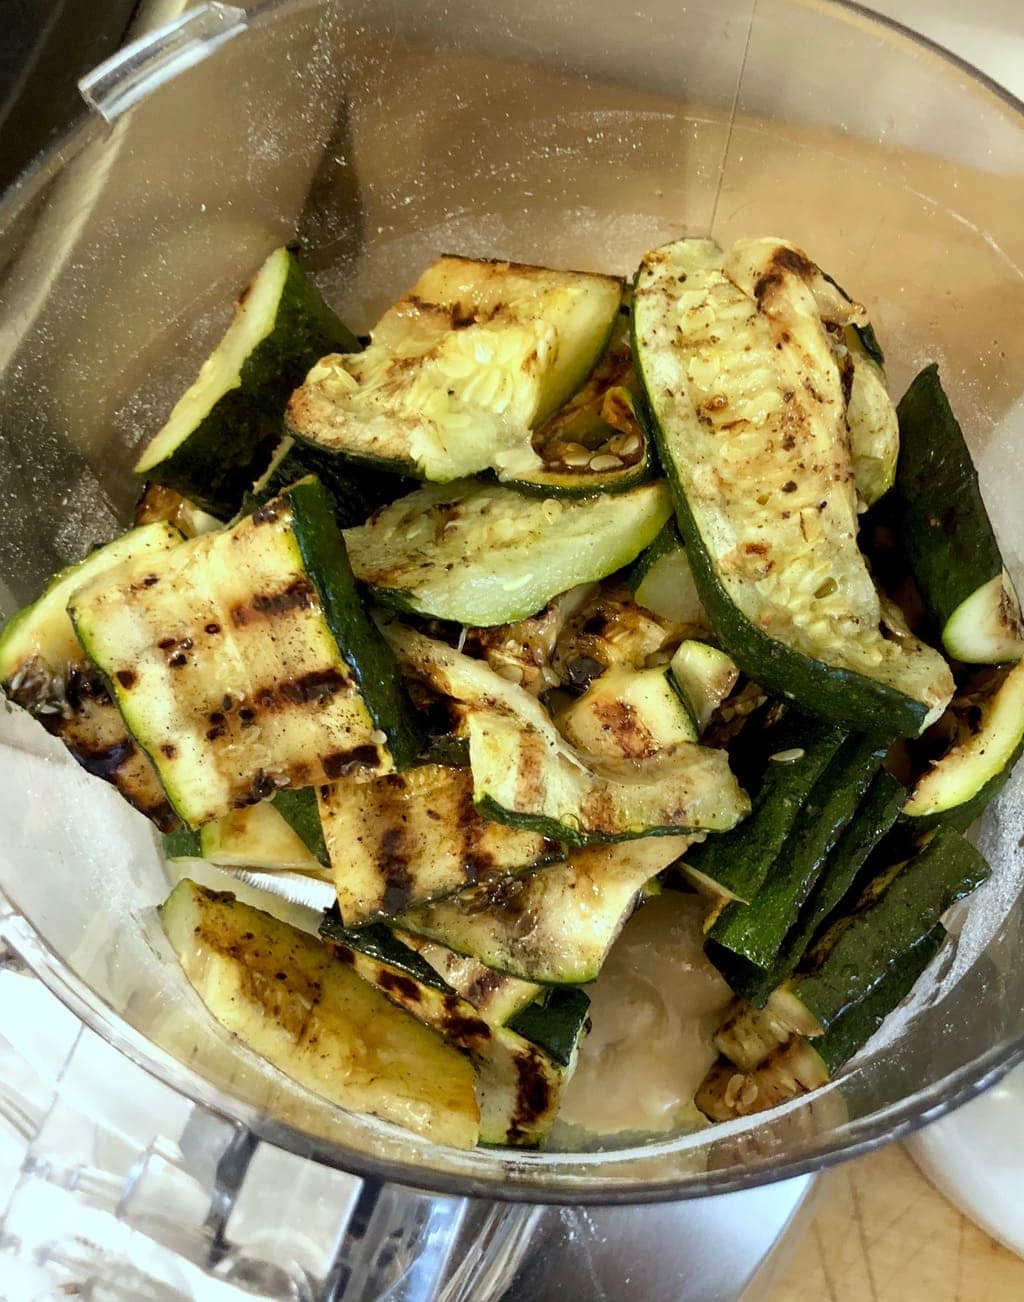 grilled zucchini in the food processor with tahini